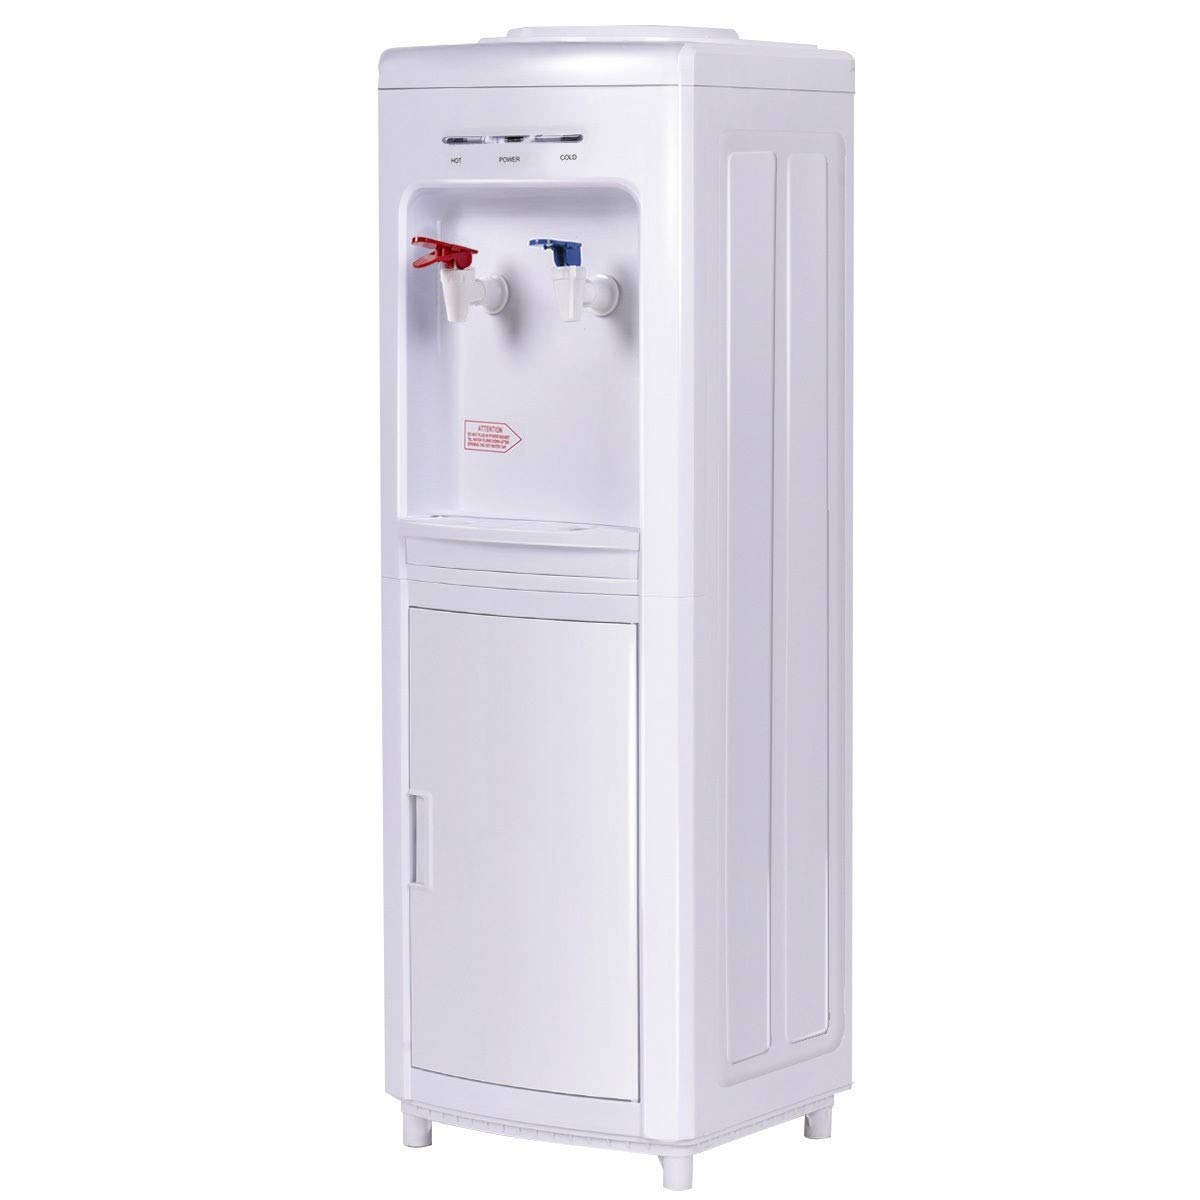 MD Group 5 Gallons Cold and Hot Water Dispenser